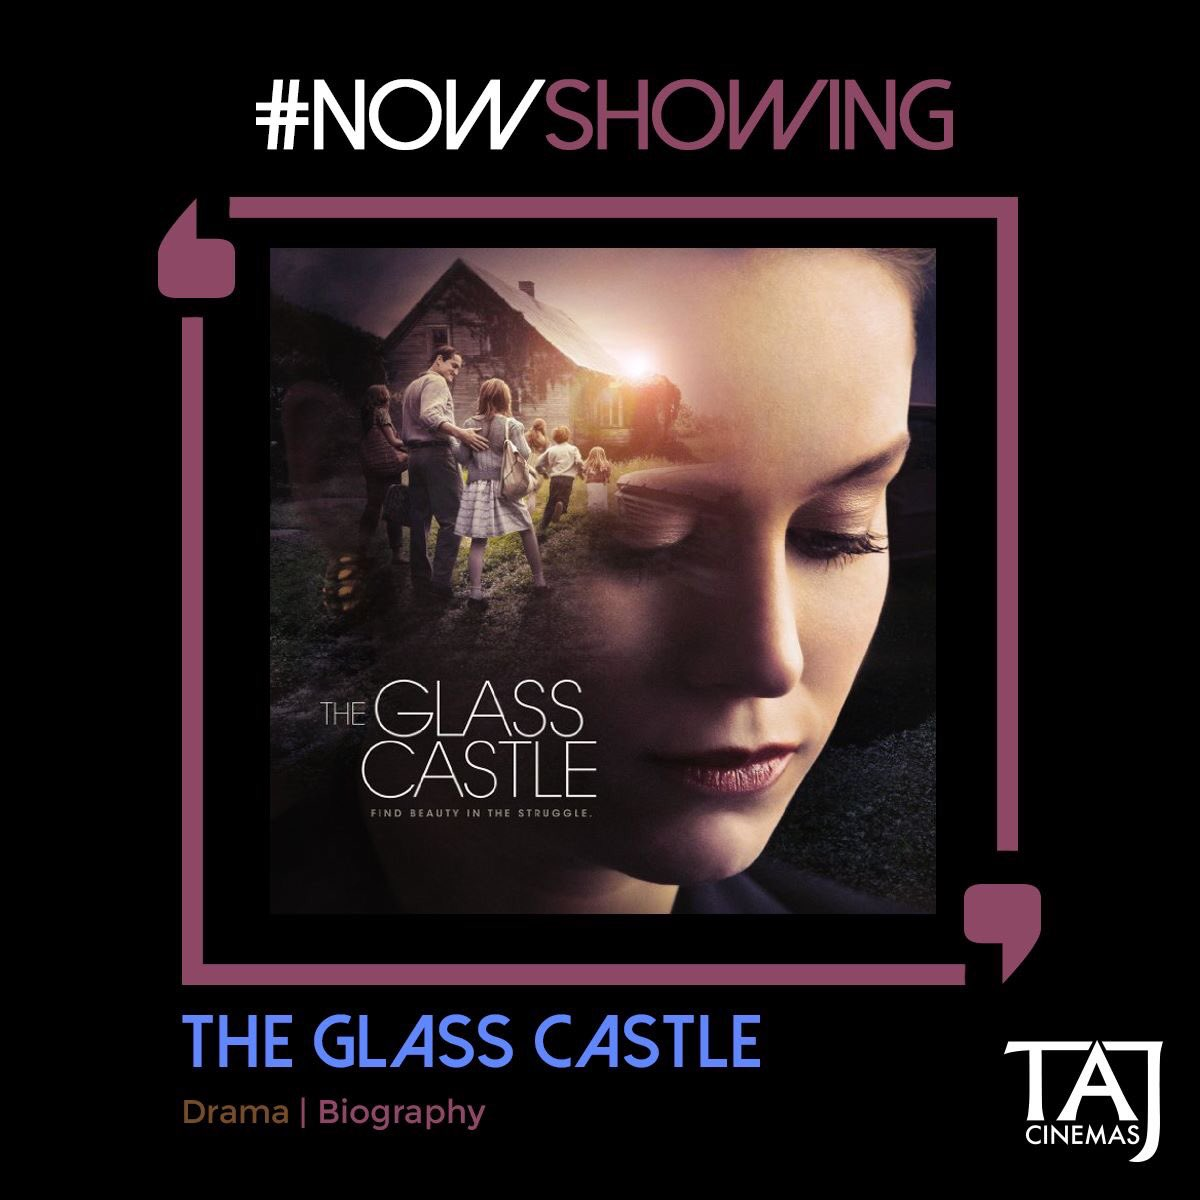 #NowShowing #Biography #Drama  A heartwarming journey that will make you laugh and cry. #TheGlassCastle movie is Now Showing at TAJ Cinemas. https://t.co/u6V3mFsGWJ